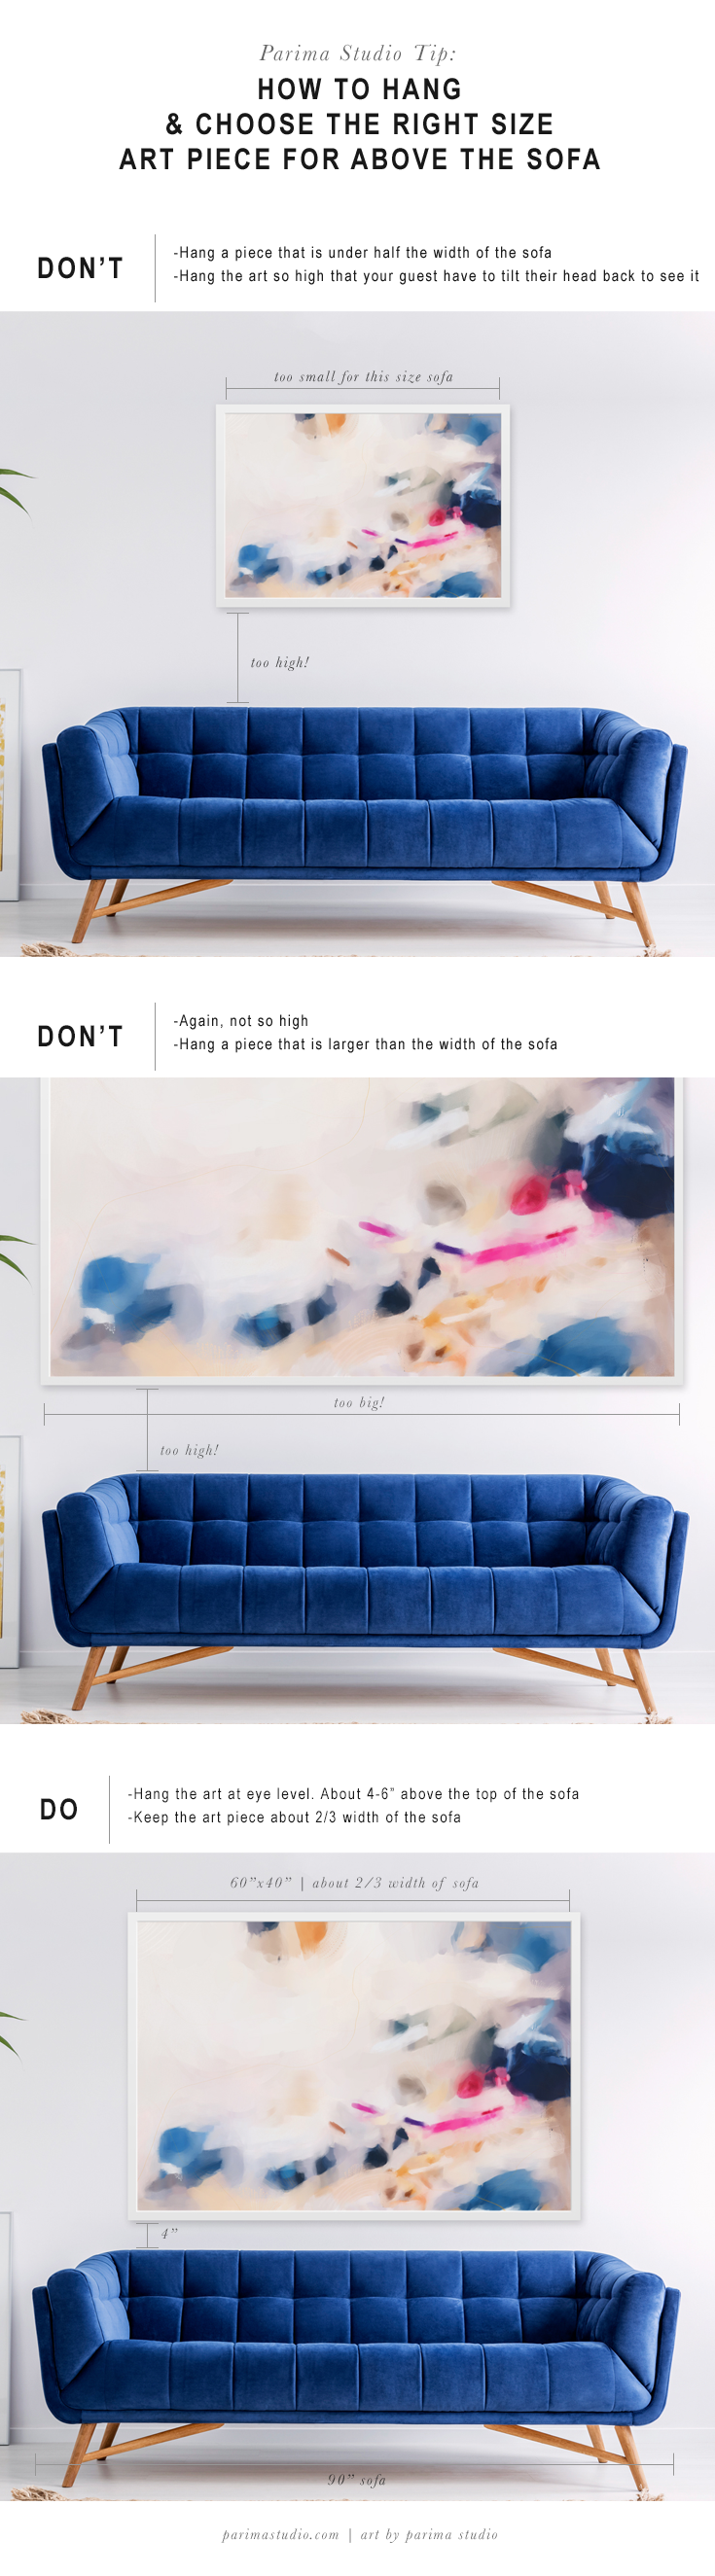 Parima Studio Tip: How to hang and choose the right size art piece for above your sofa